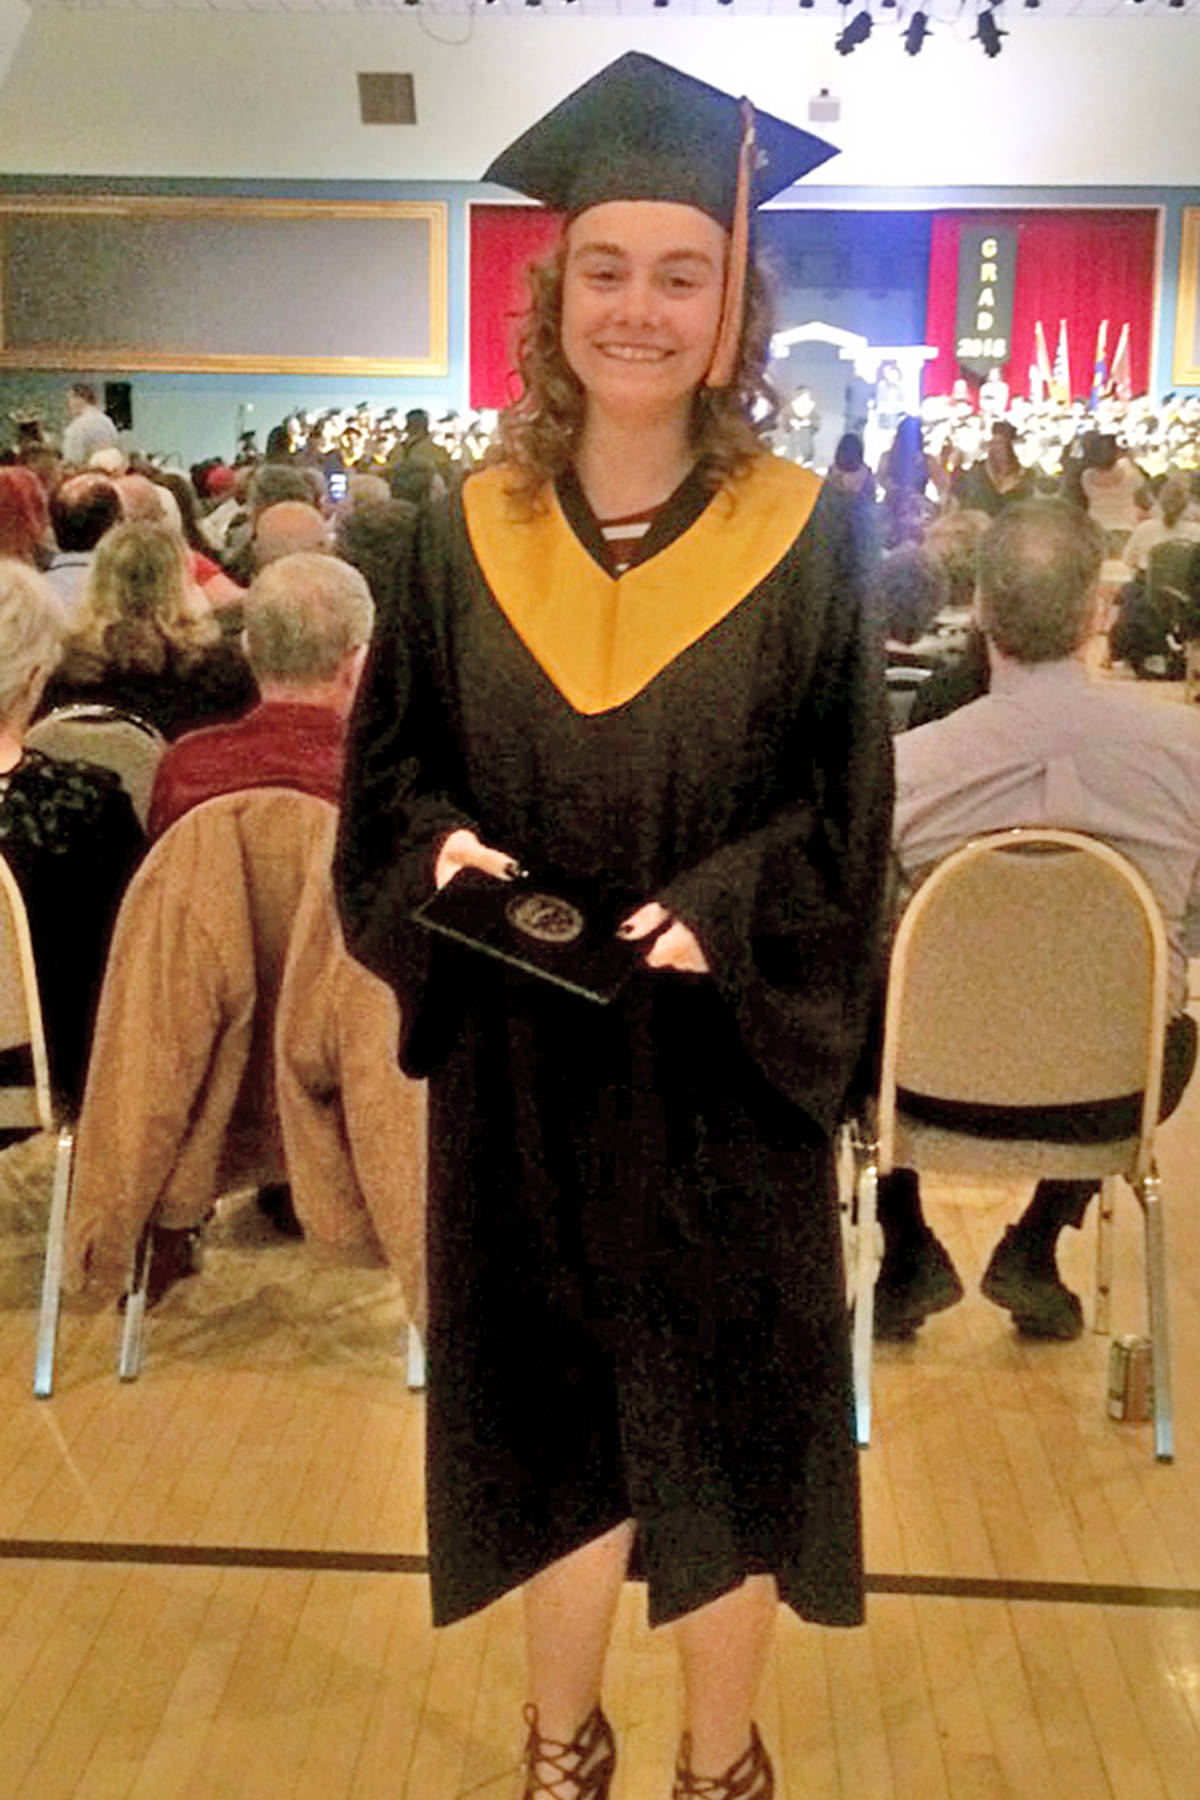 Faith Liberty Unger, 19, was killed in a crash along Highway 20 west of Williams Lake early Saturday morning. Here Faith is pictured attending her high school graduation in Prince George in June of 2018. (Photos submitted)